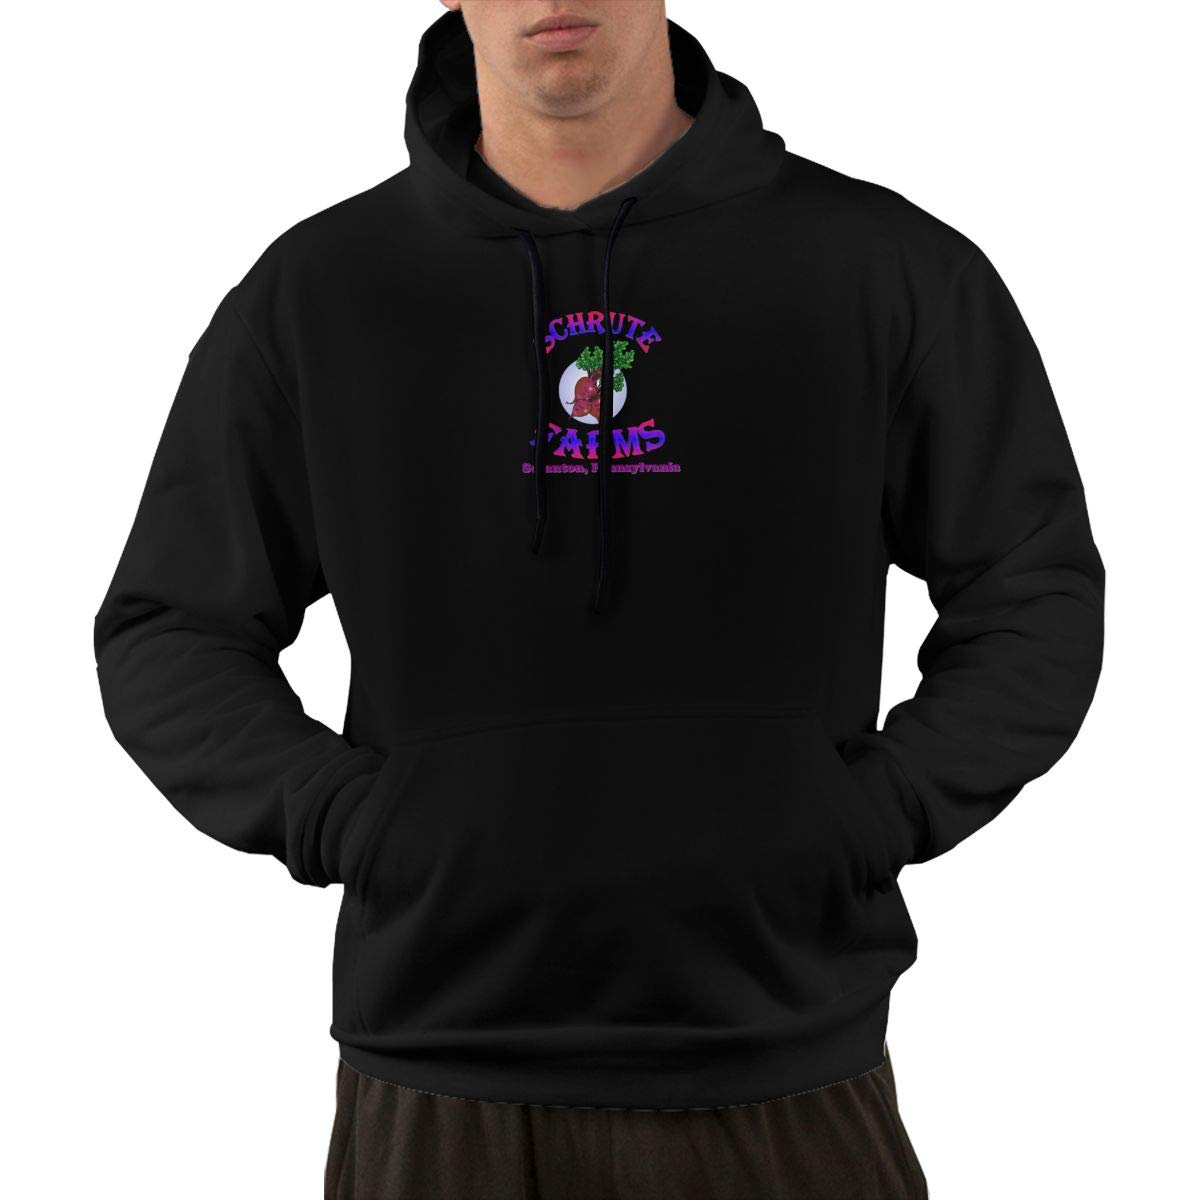 Schrute Farms Beets Hoodie Mens Fashion Performance Active Sweatshirts Hoodie Shirt with Front Pocket